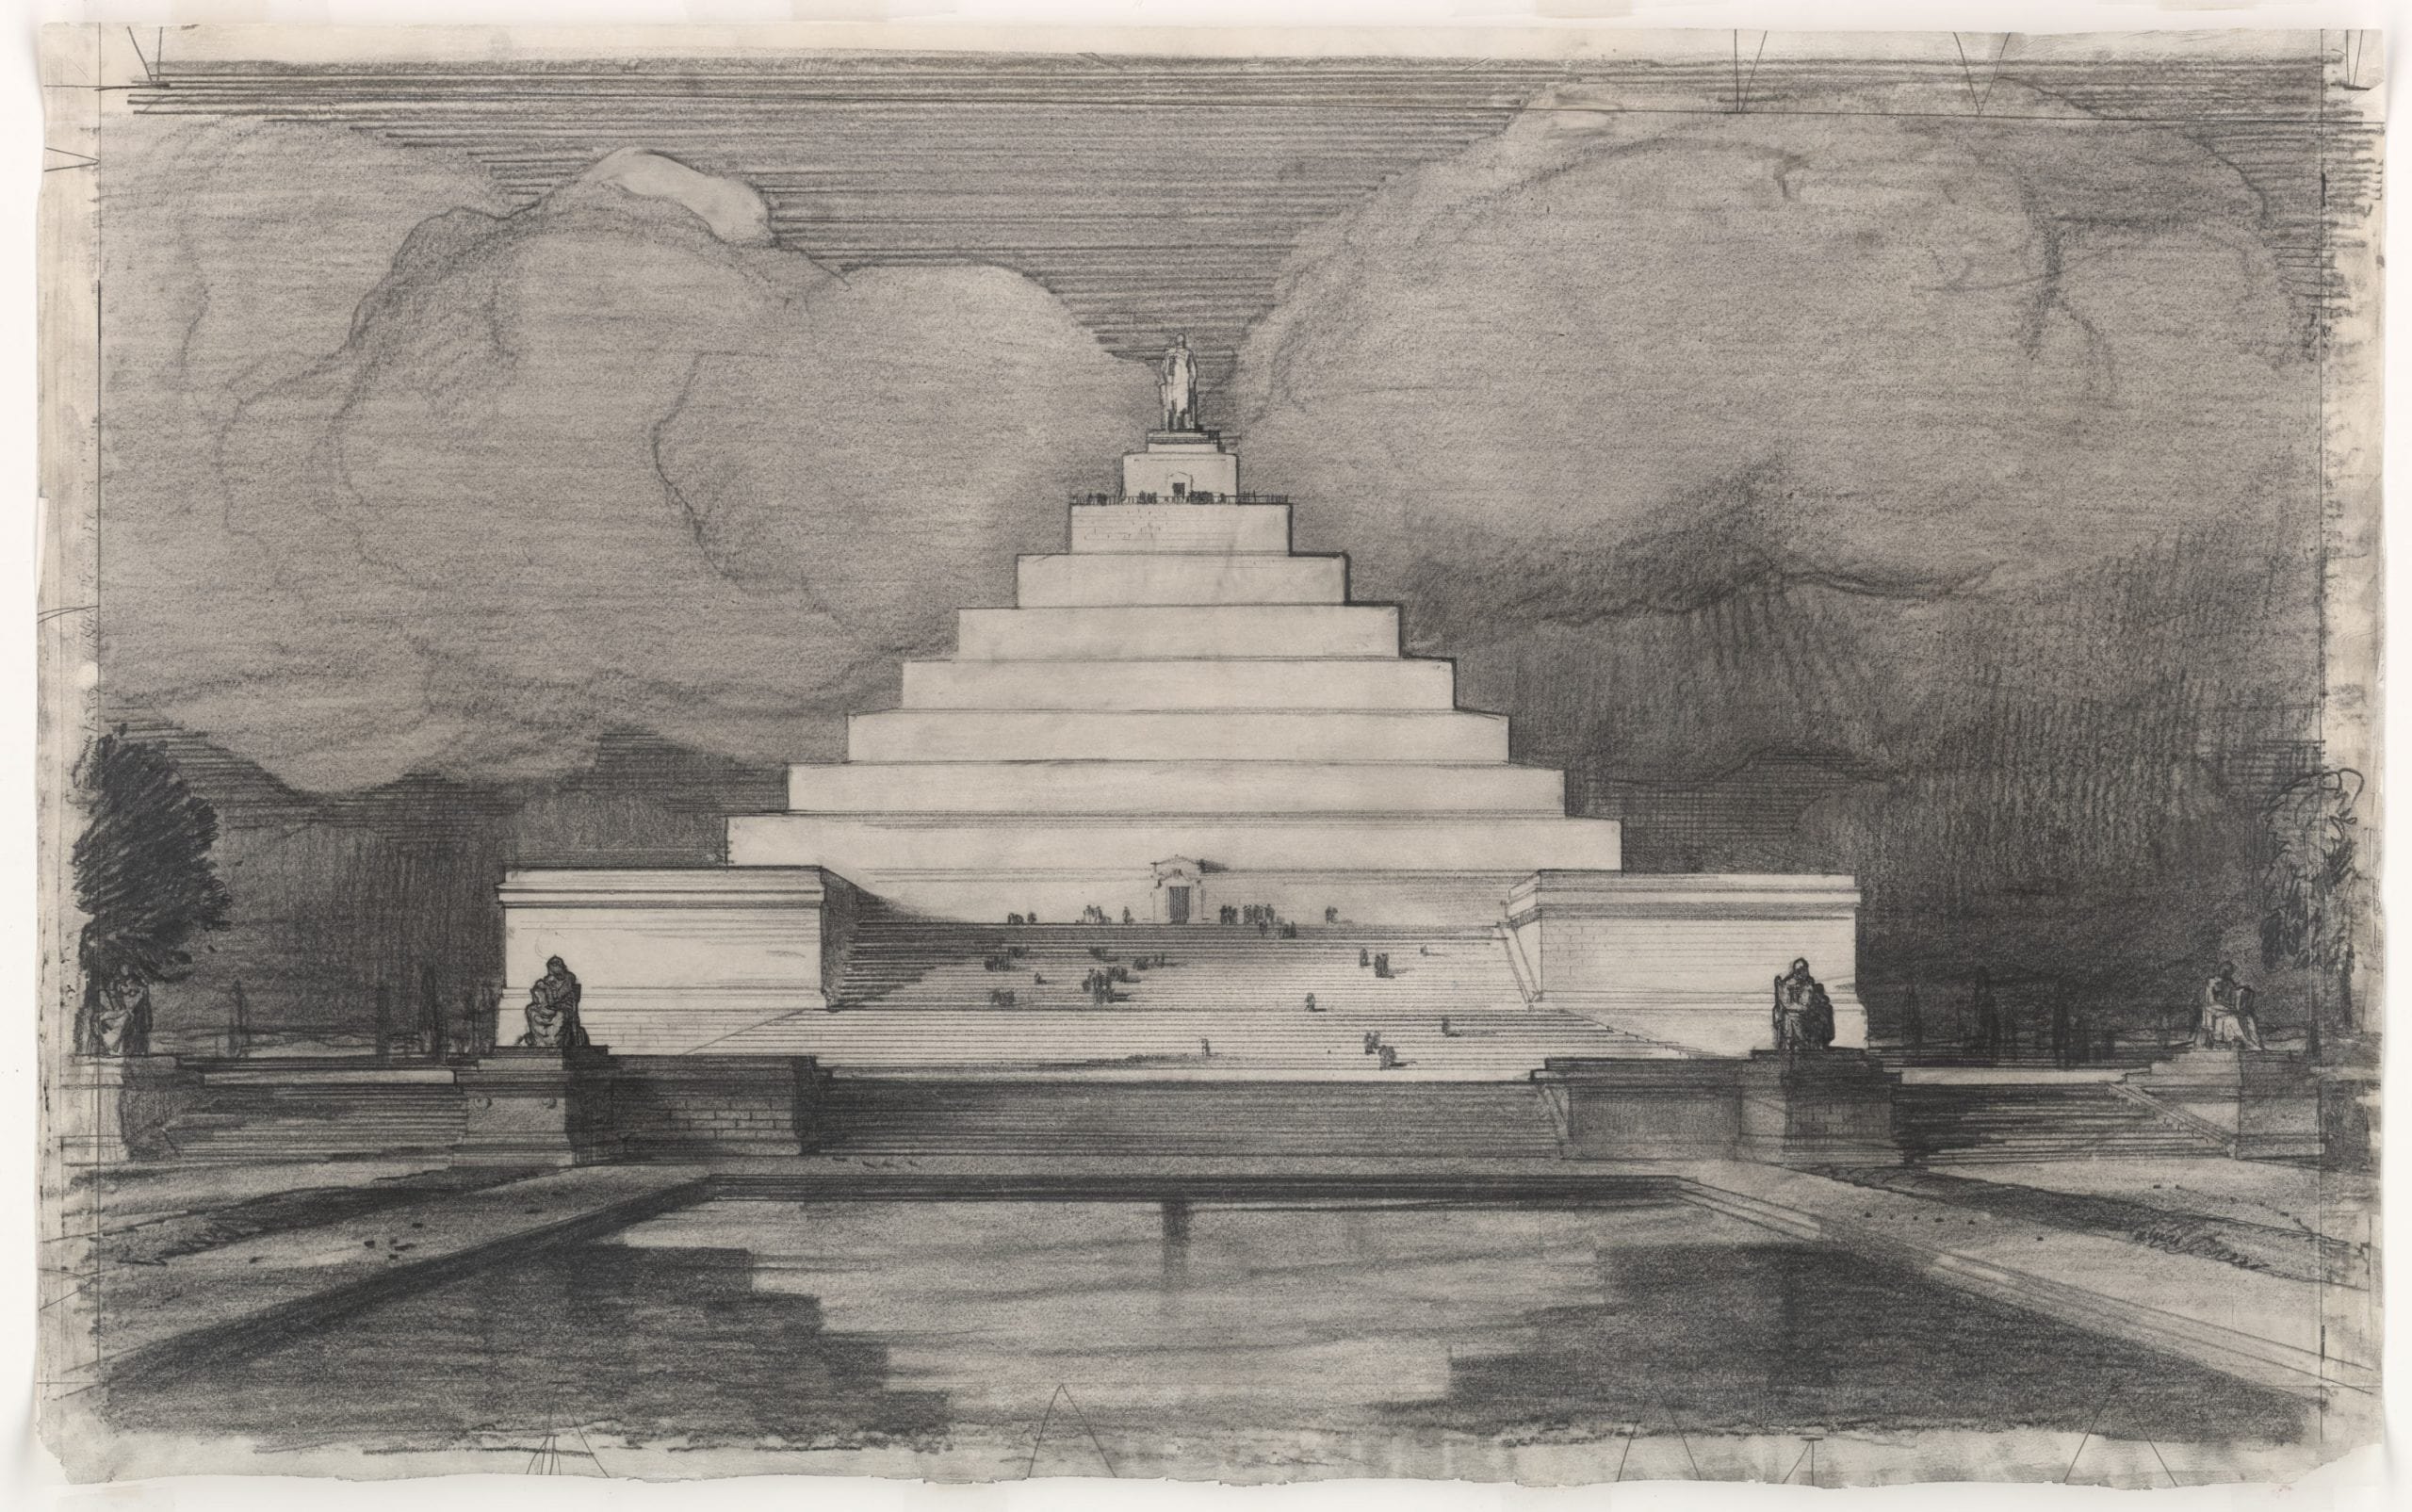 John Russell Pope's Competition Proposal for a Ziggurat Style Monument to Abraham Lincoln, 1912